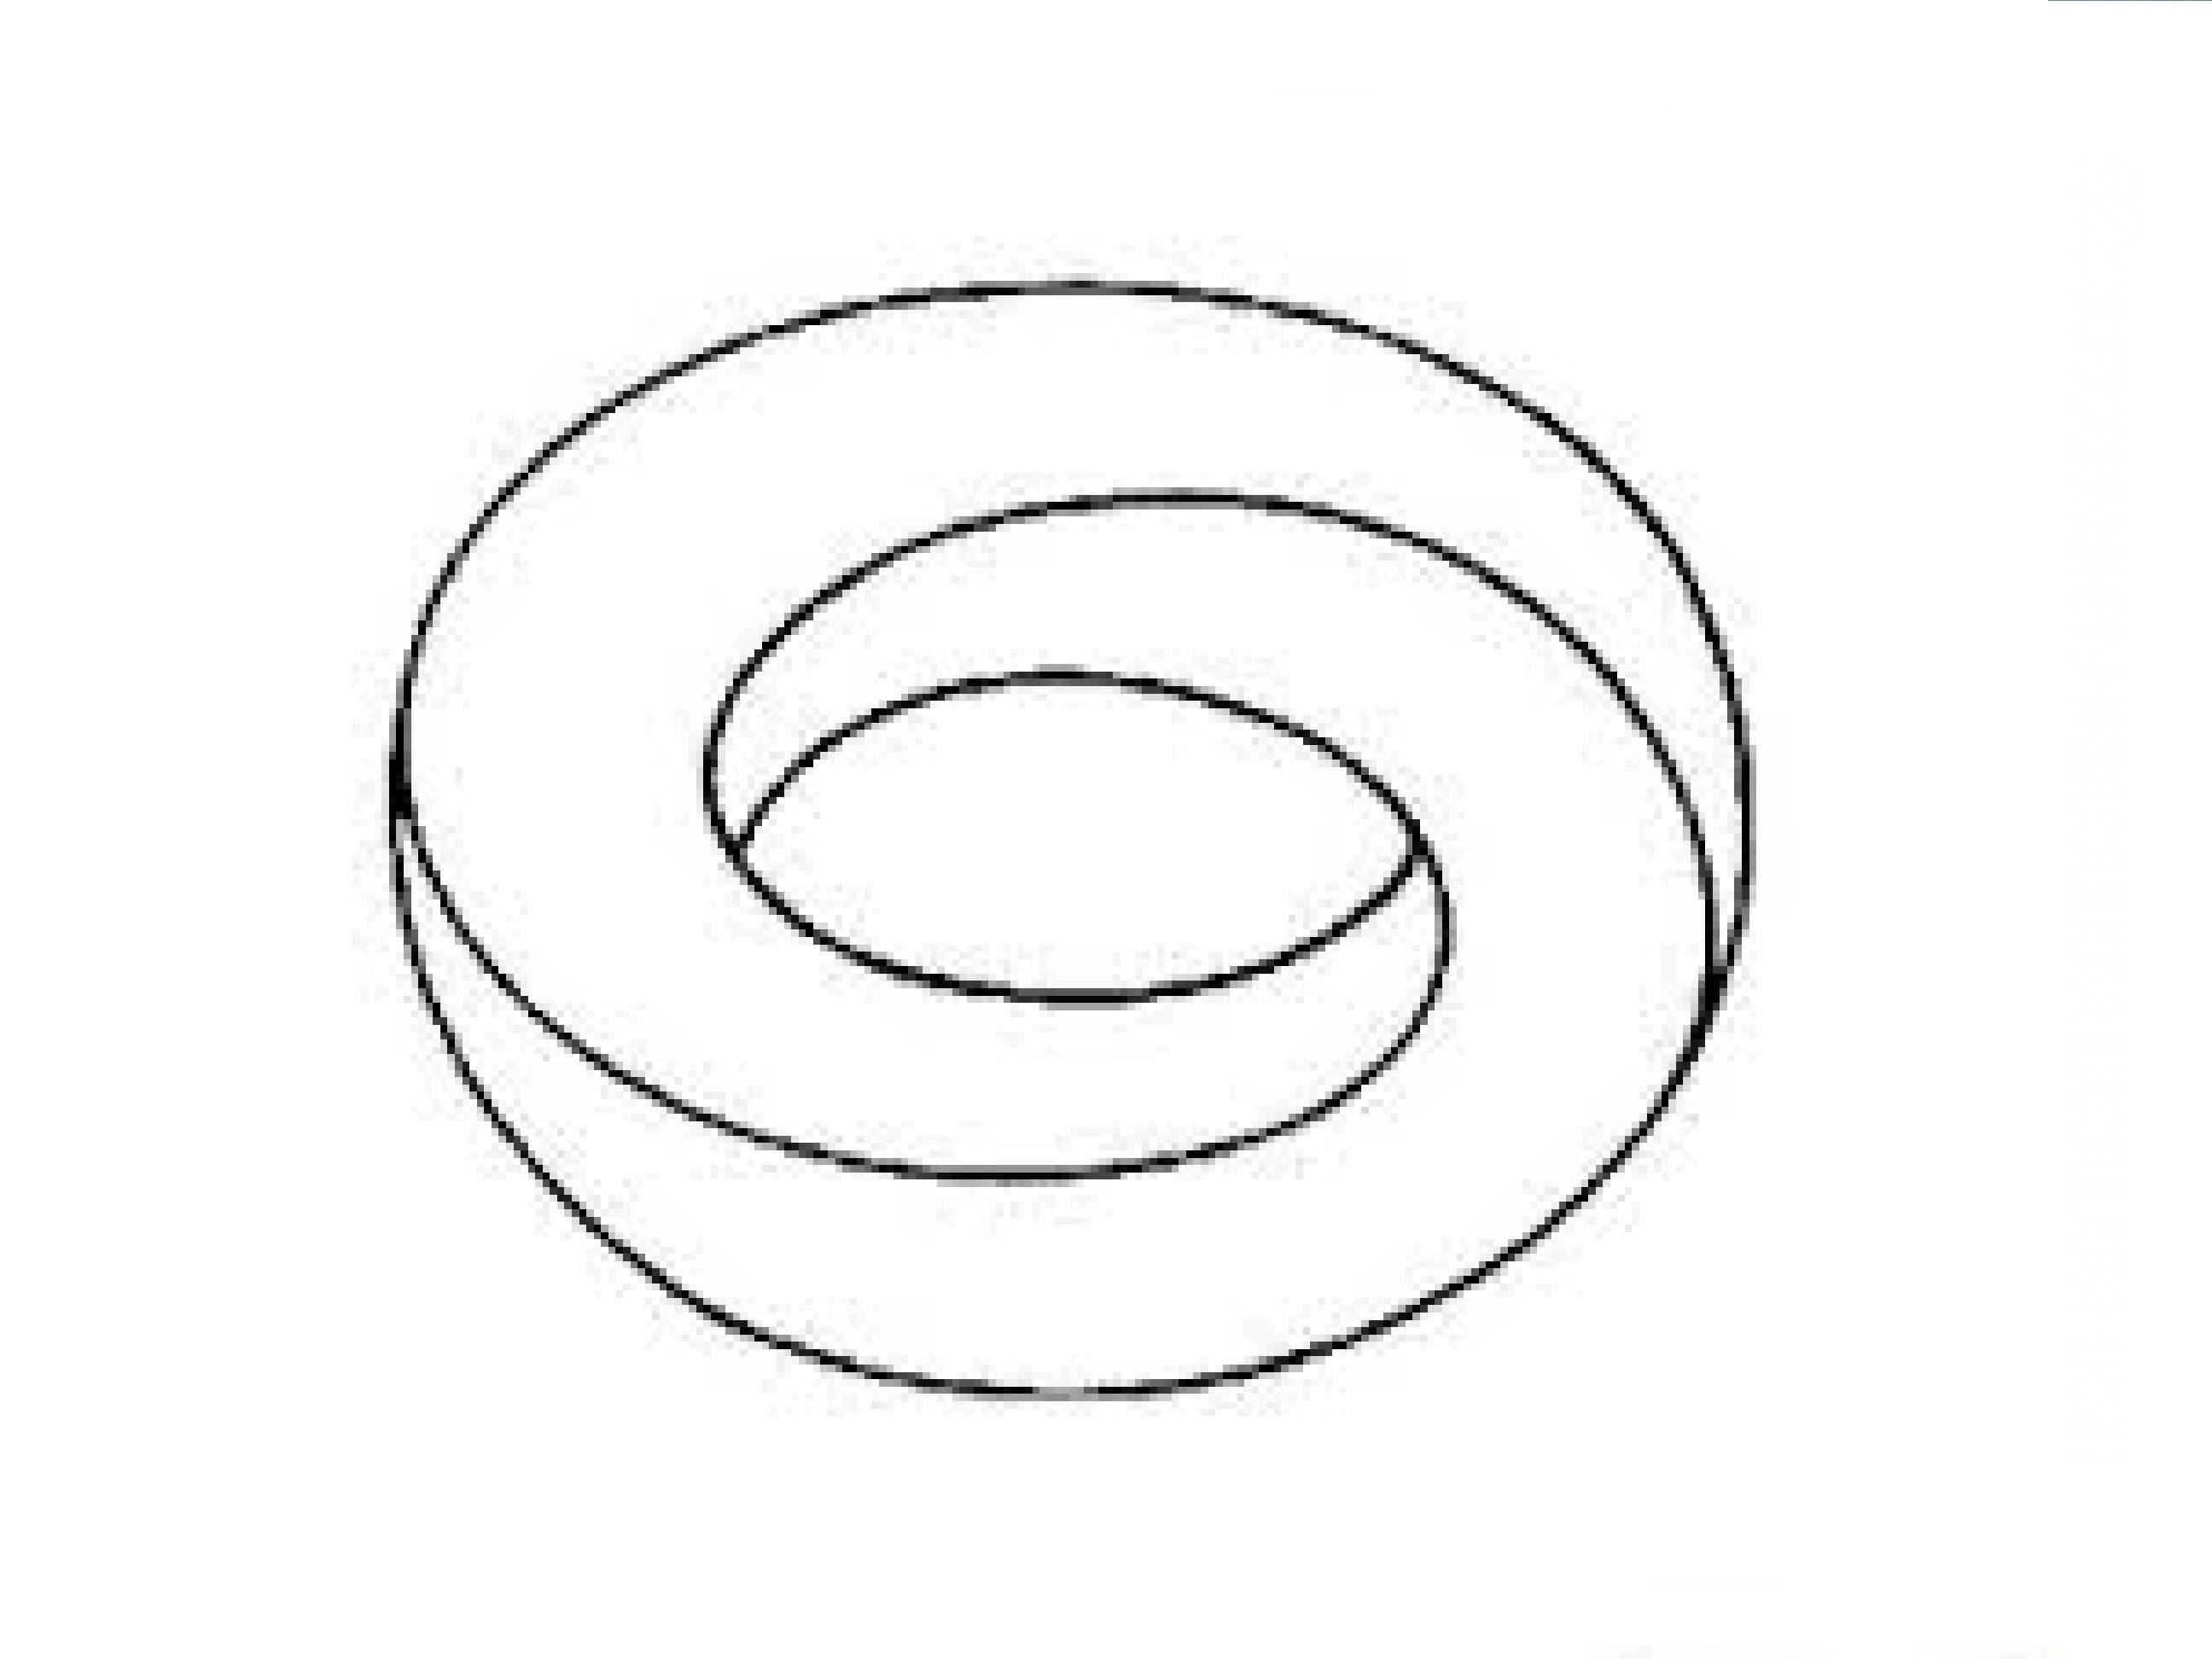 2592x1944 How To Draw An Impossible Oval